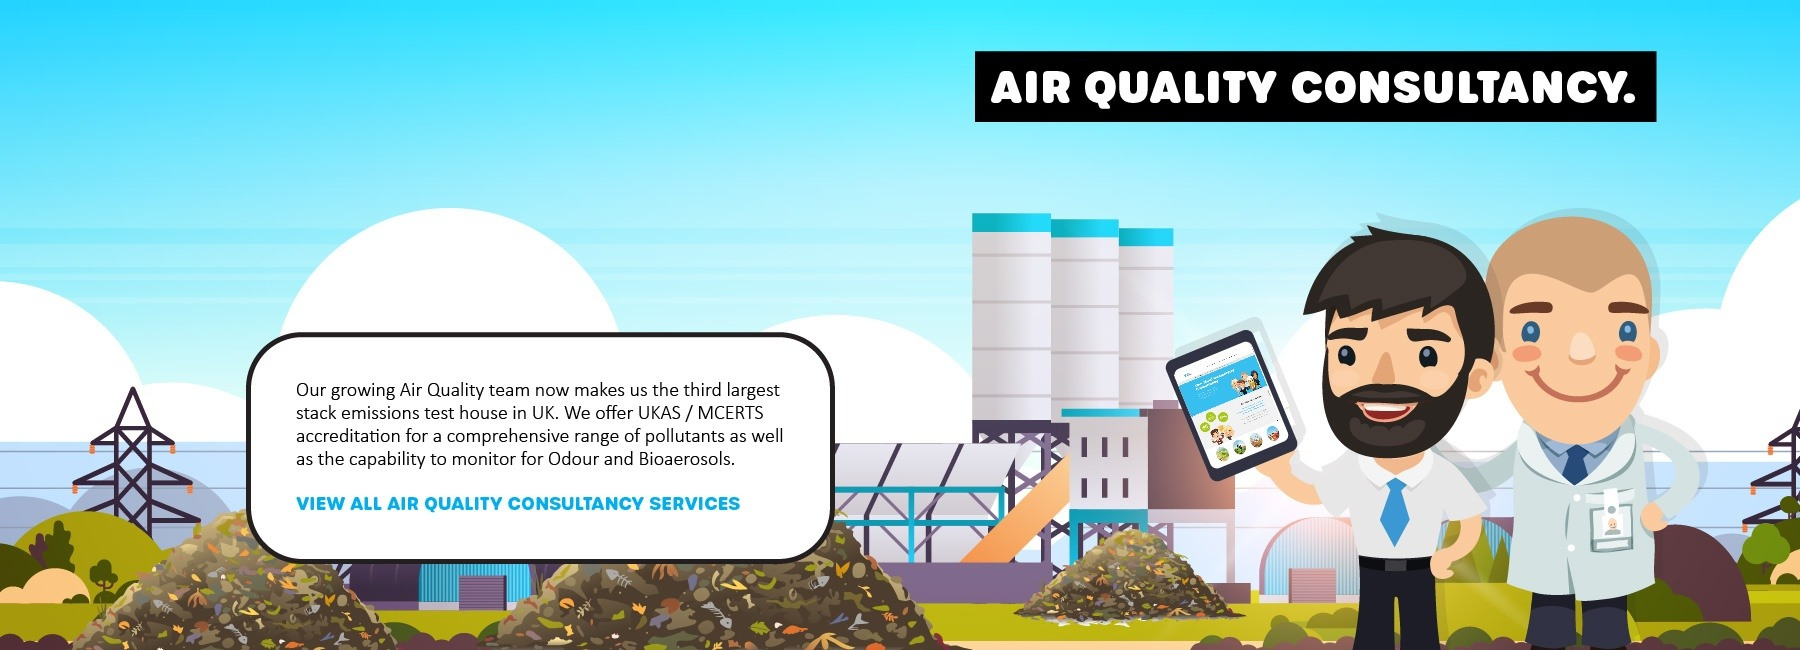 ECL Air Quality Consultancy Banner